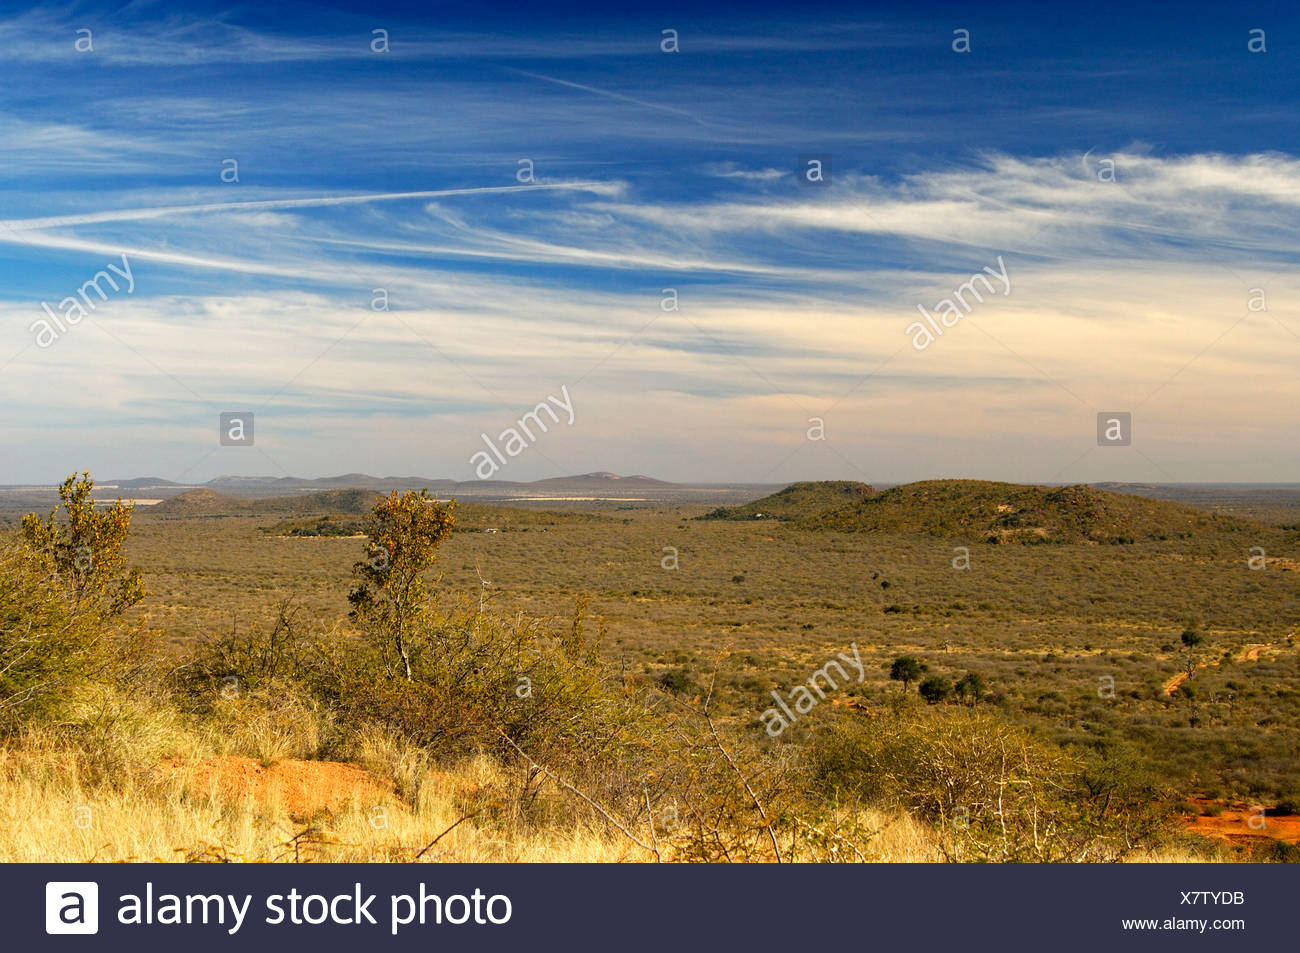 View over the vast African savannah landscape in the Madikwe Game Reserve, South Africa, Africa - Stock Image